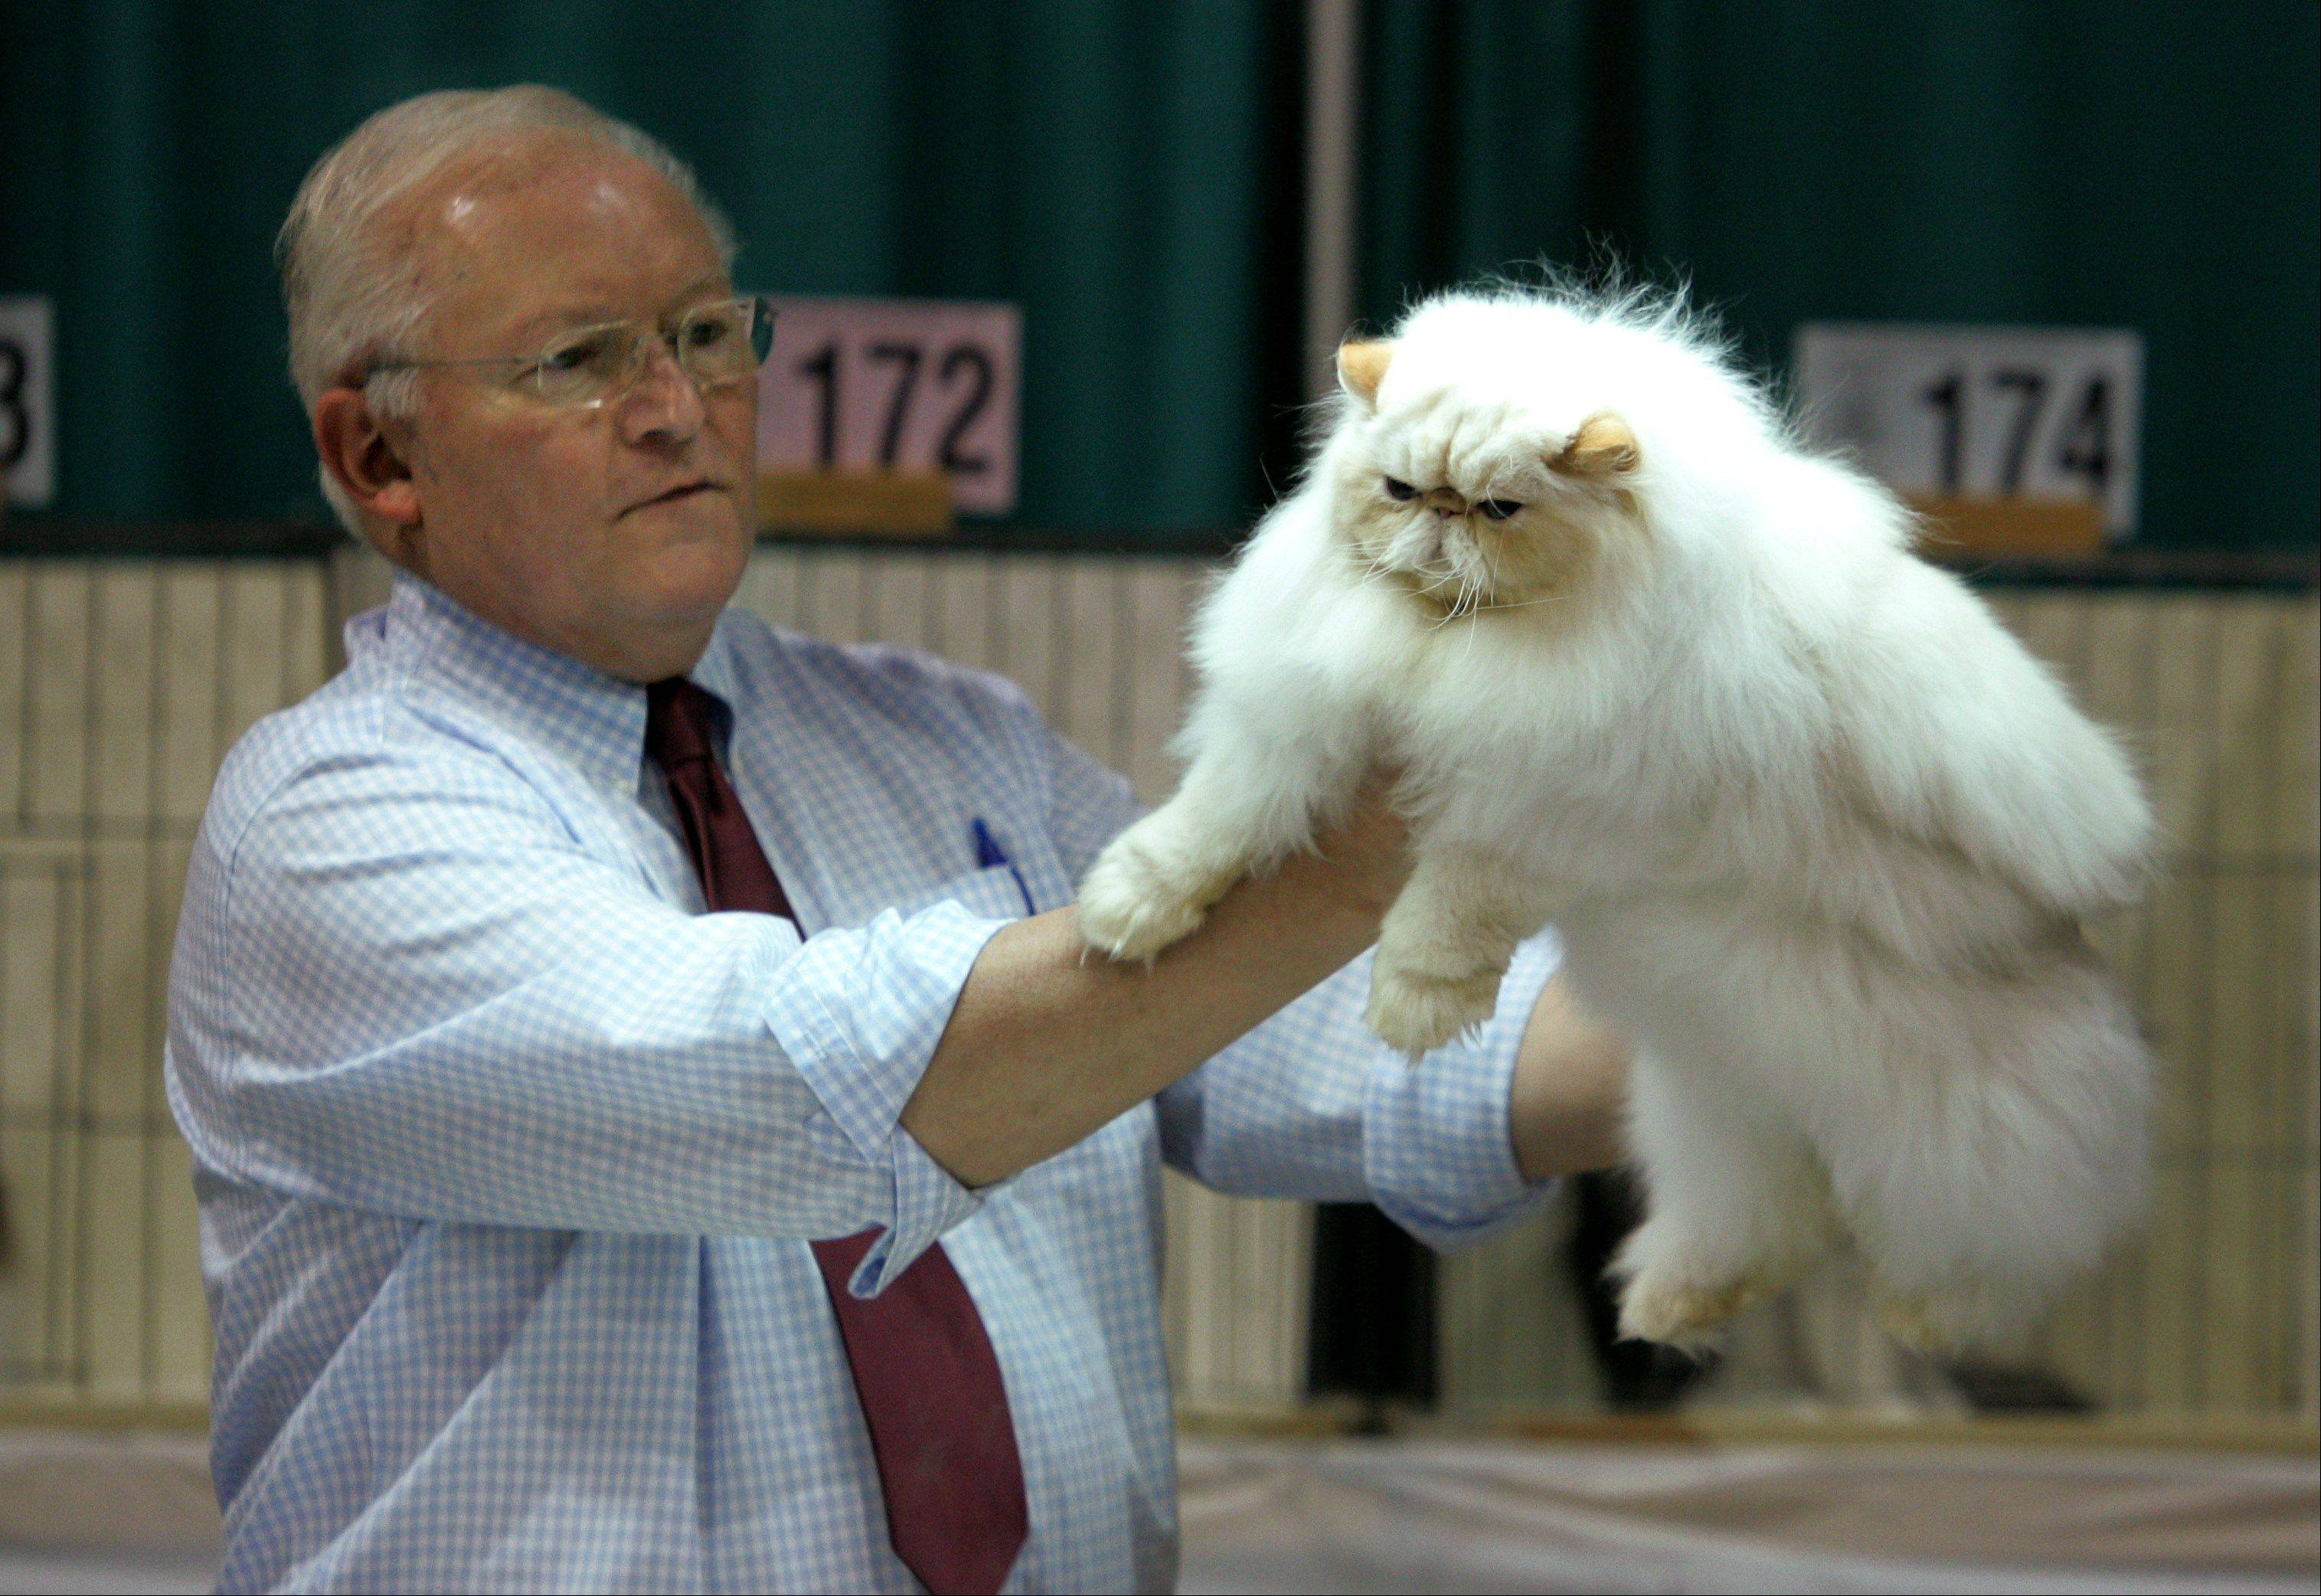 Judge David Mare looks at Laurenden Bunny, a Himalayan owned by Tom Baugh of Rochester, N.Y., during the 52nd annual Lincoln State Cat Club Allbreed Cat Show at Harper College in Palatine. This year's show is Saturday and Sunday, Feb. 16-17, and features entries from around the country.